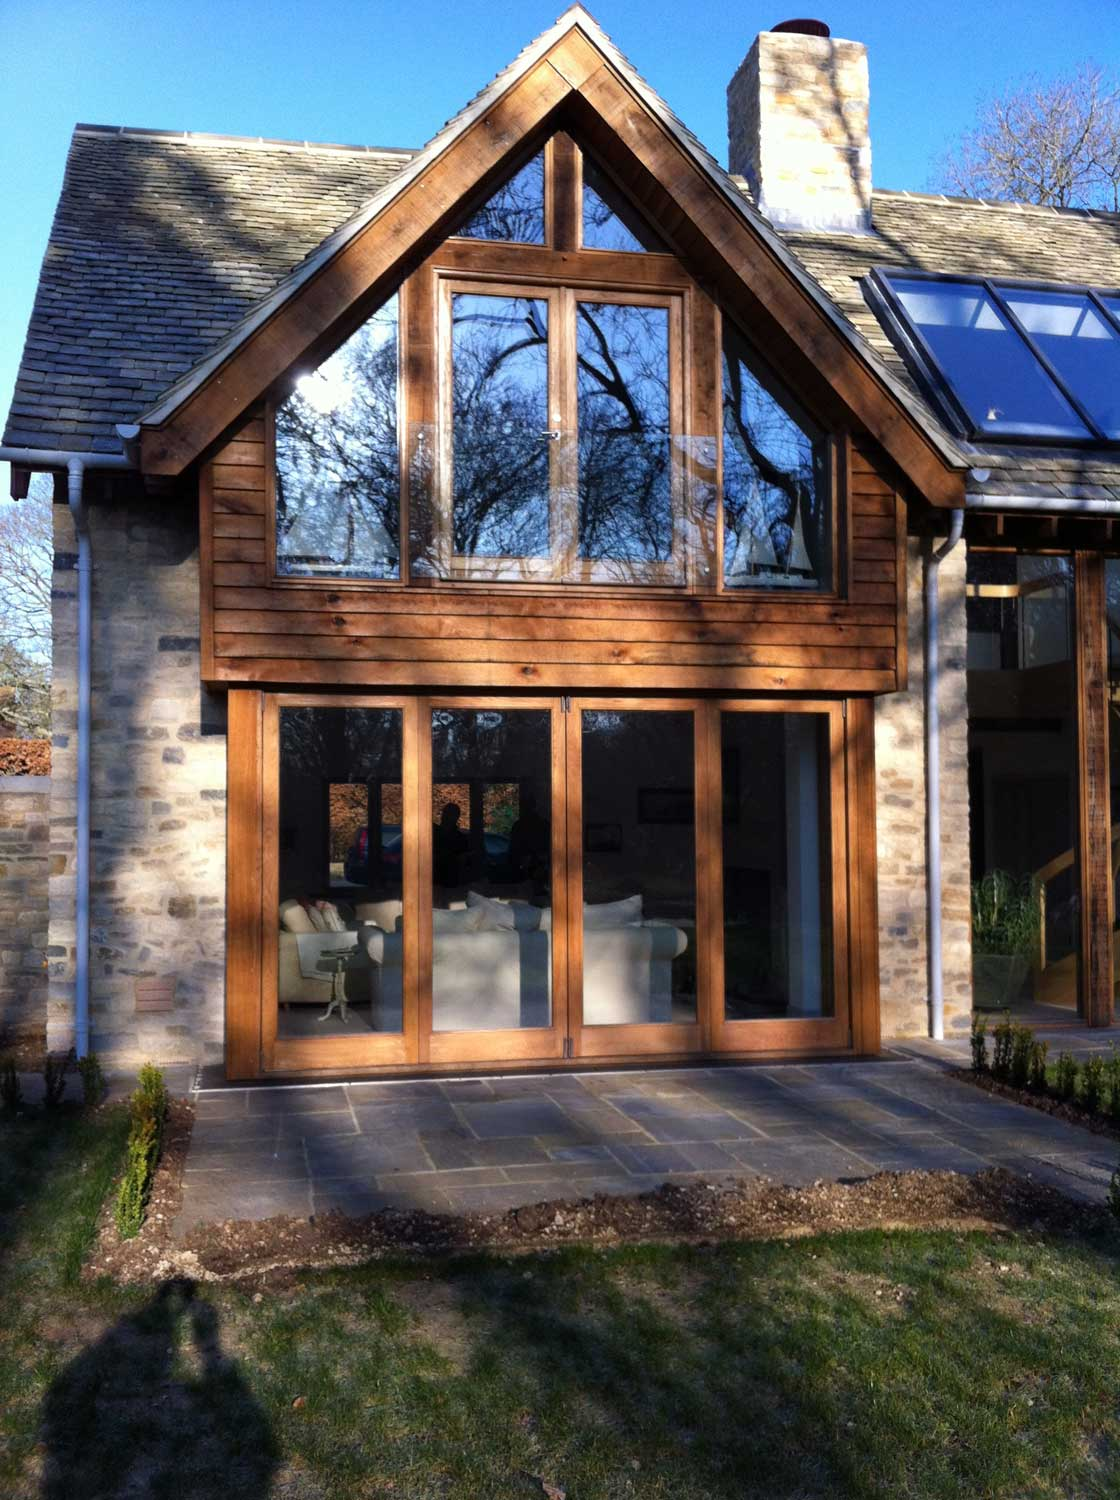 windows and wooden bi-fold doors